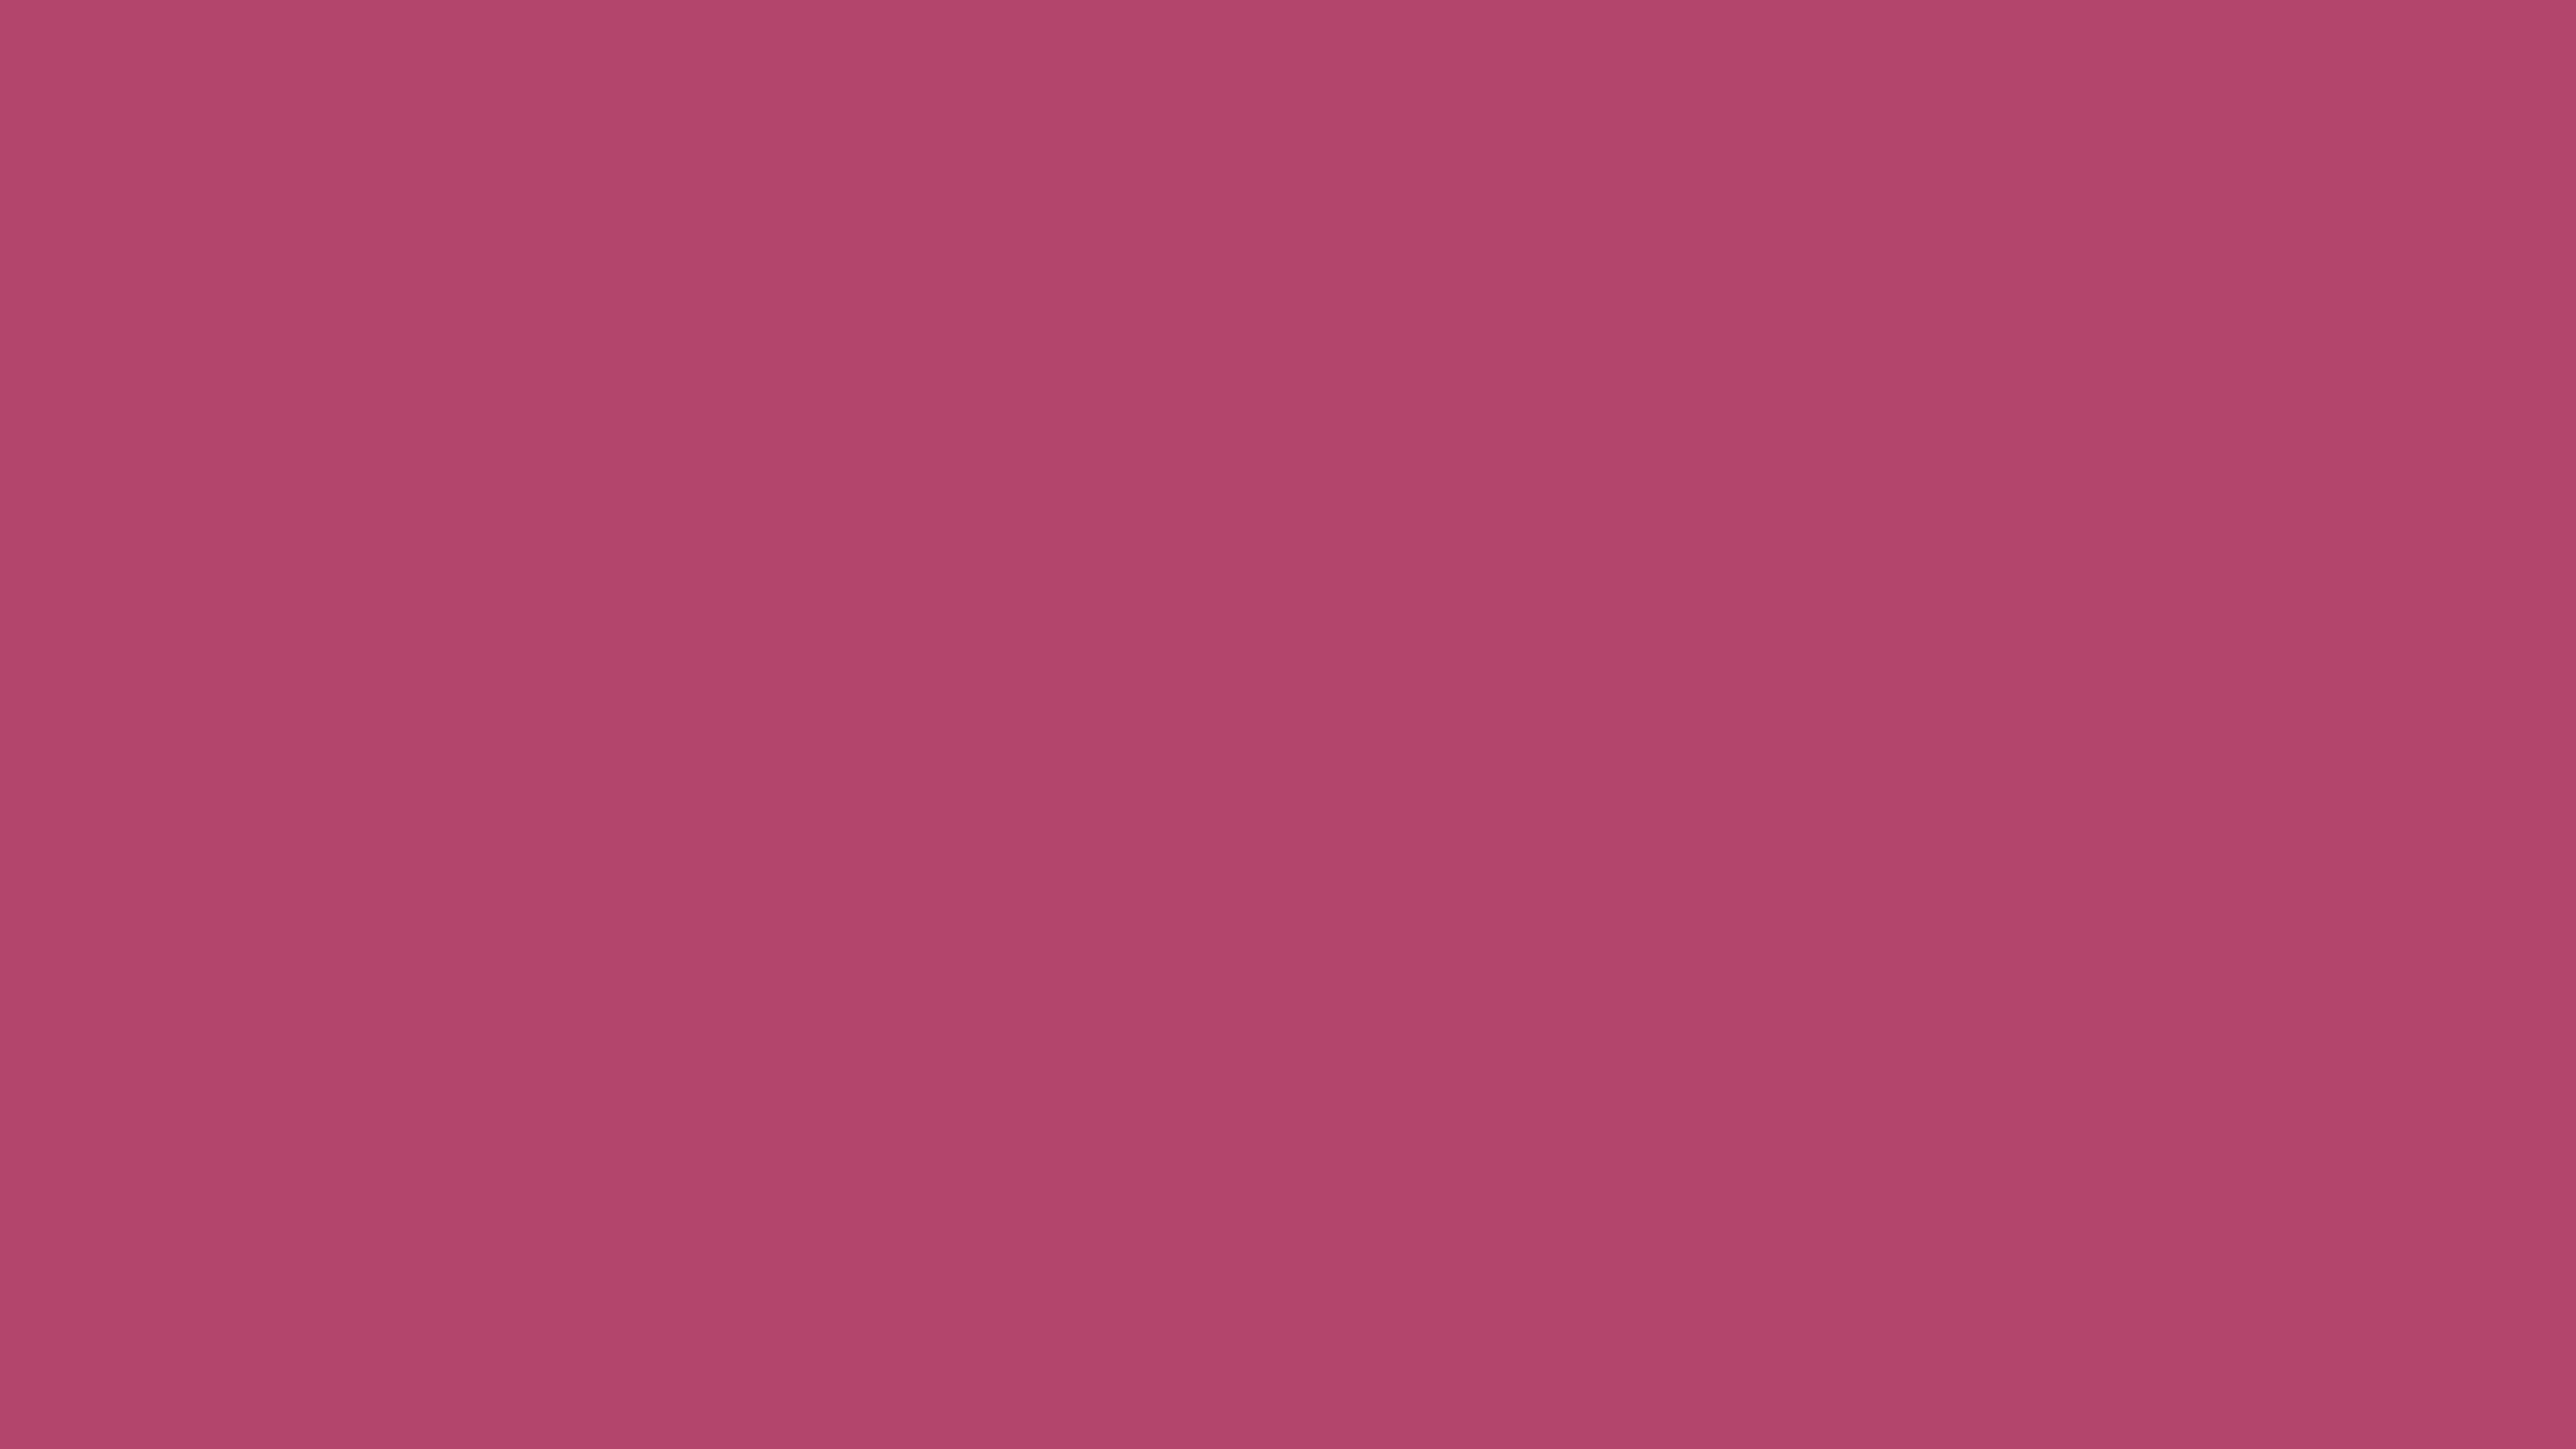 4096x2304 Raspberry Rose Solid Color Background